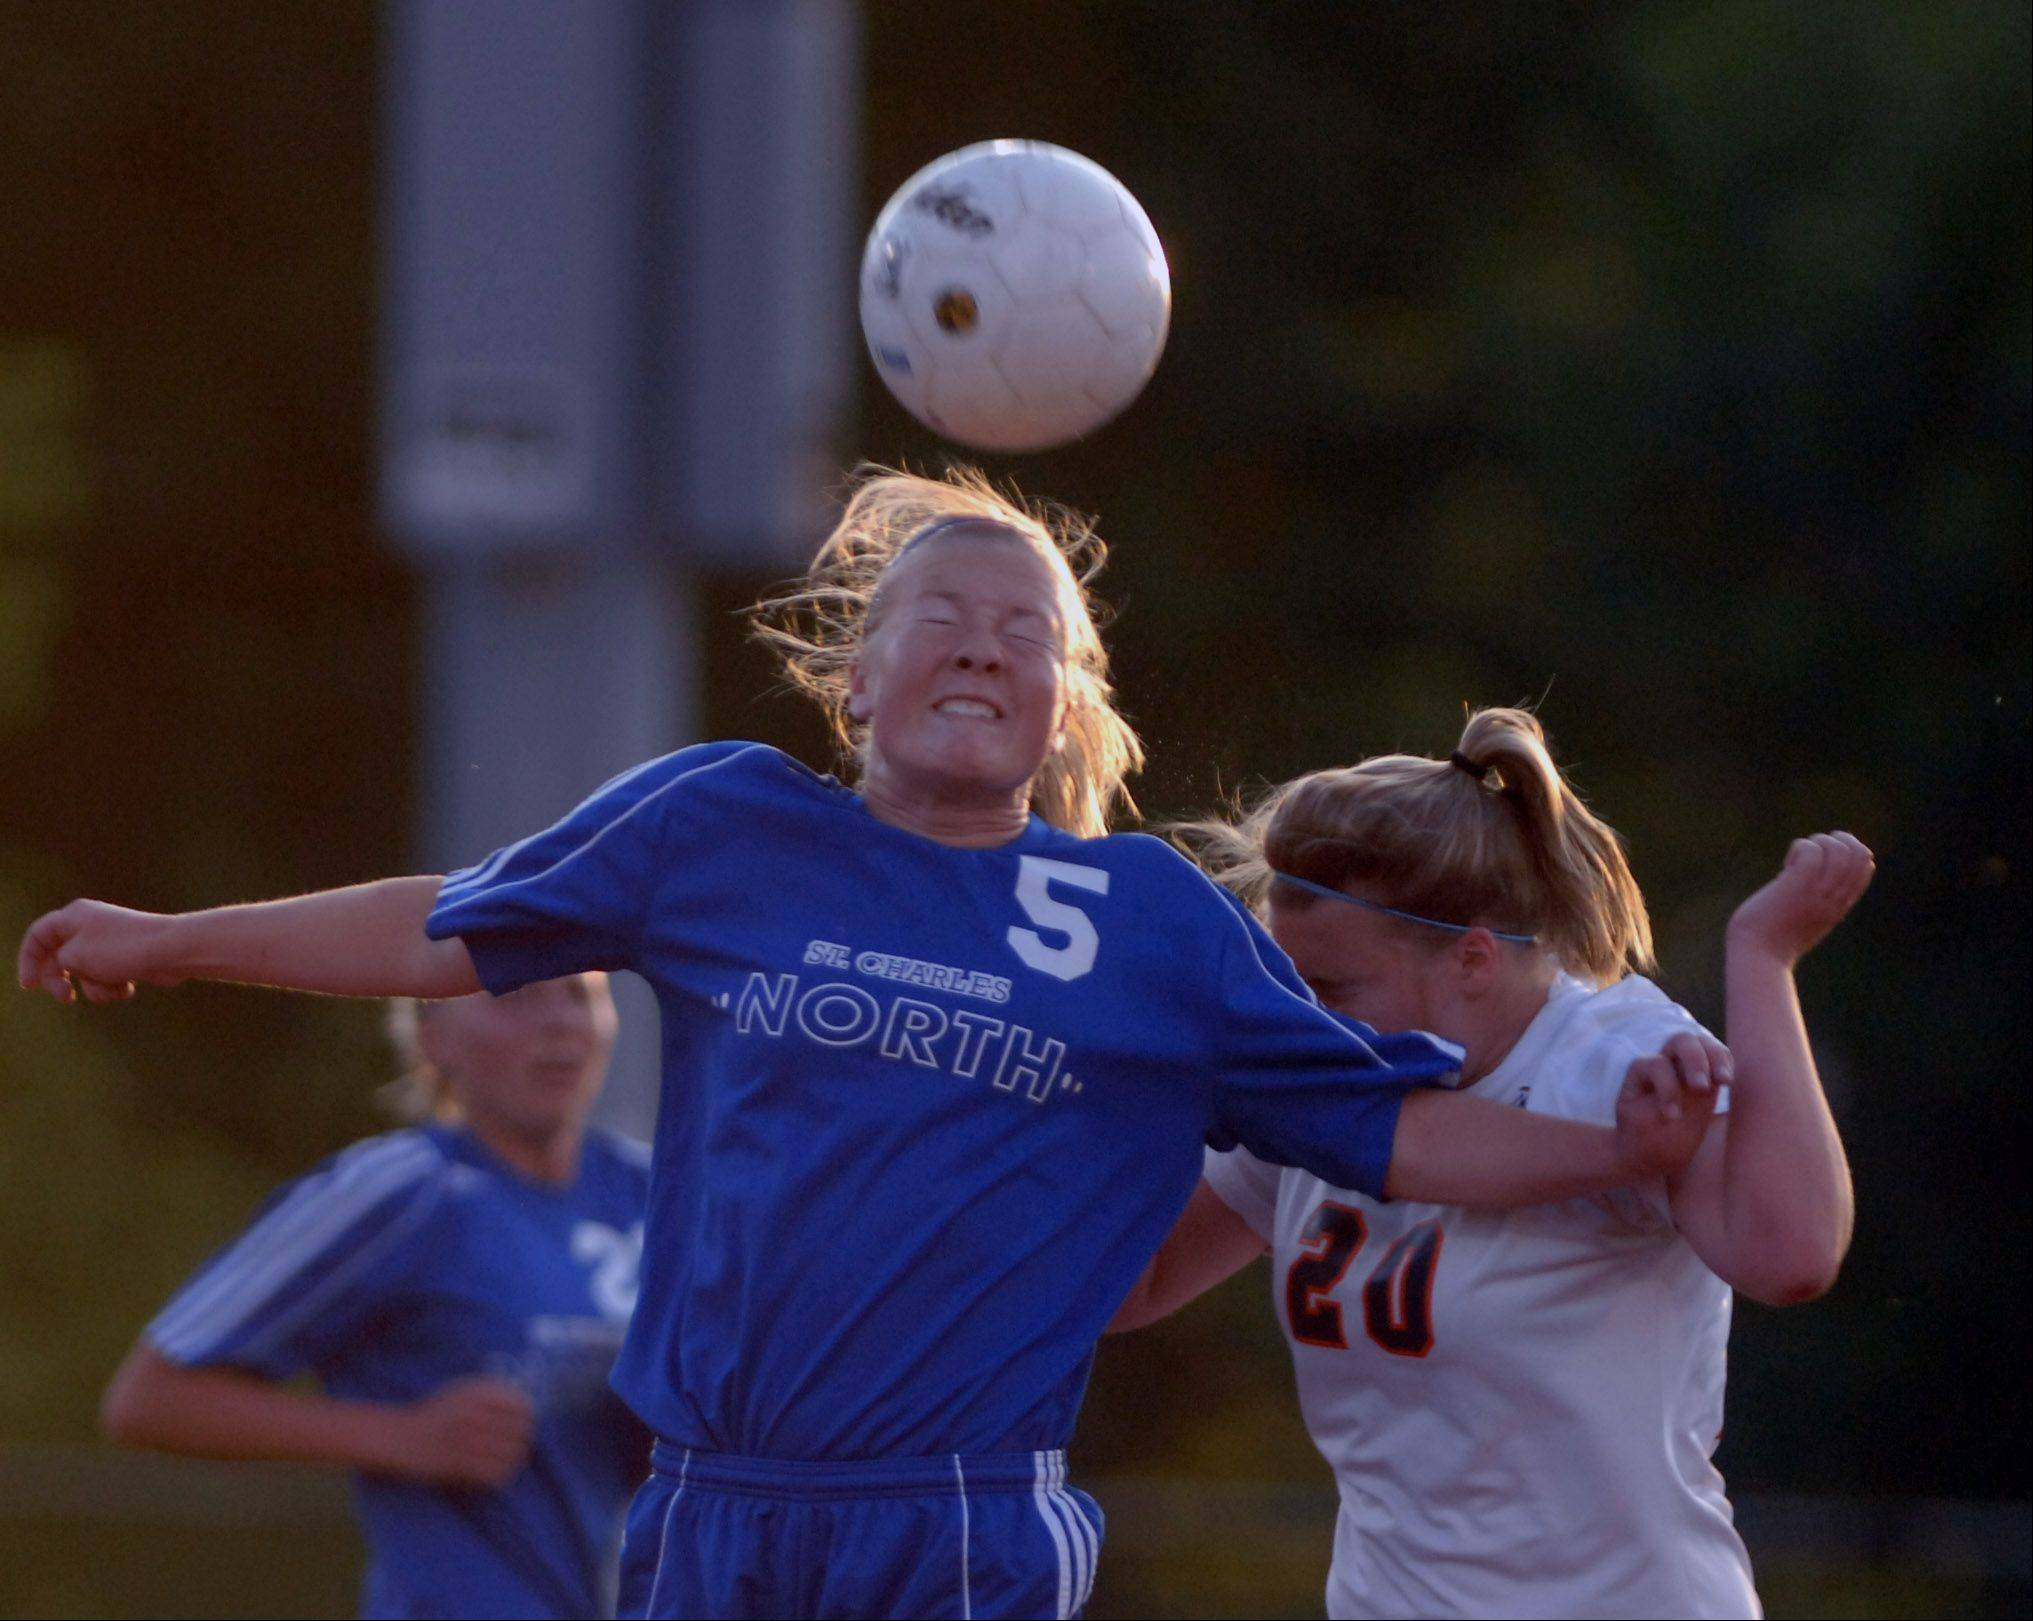 Natalie Winkates of St. Charles North heads the ball during the Class 3A girls championship game at North Central College.